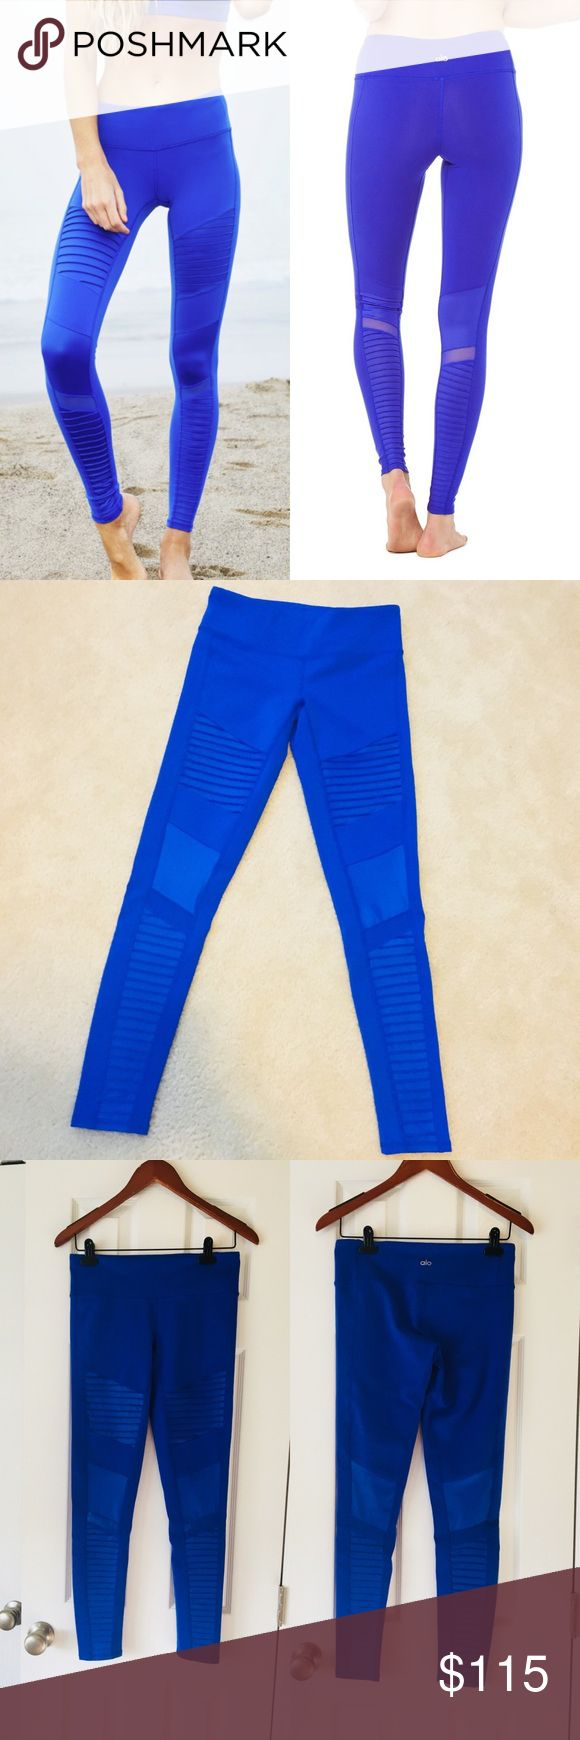 ALO Yoga Moto Leggings ALO Yoga Moto Leggings  Color: Deep Electric Blue Size: M (I wear a 4/6 in lululemon & these fit well) Mid rise VVGUC. No rips, stains, holes, or piling! Prepping for an upcoming military move and needing to downsize.   RARE ALO Yoga Pants Leggings